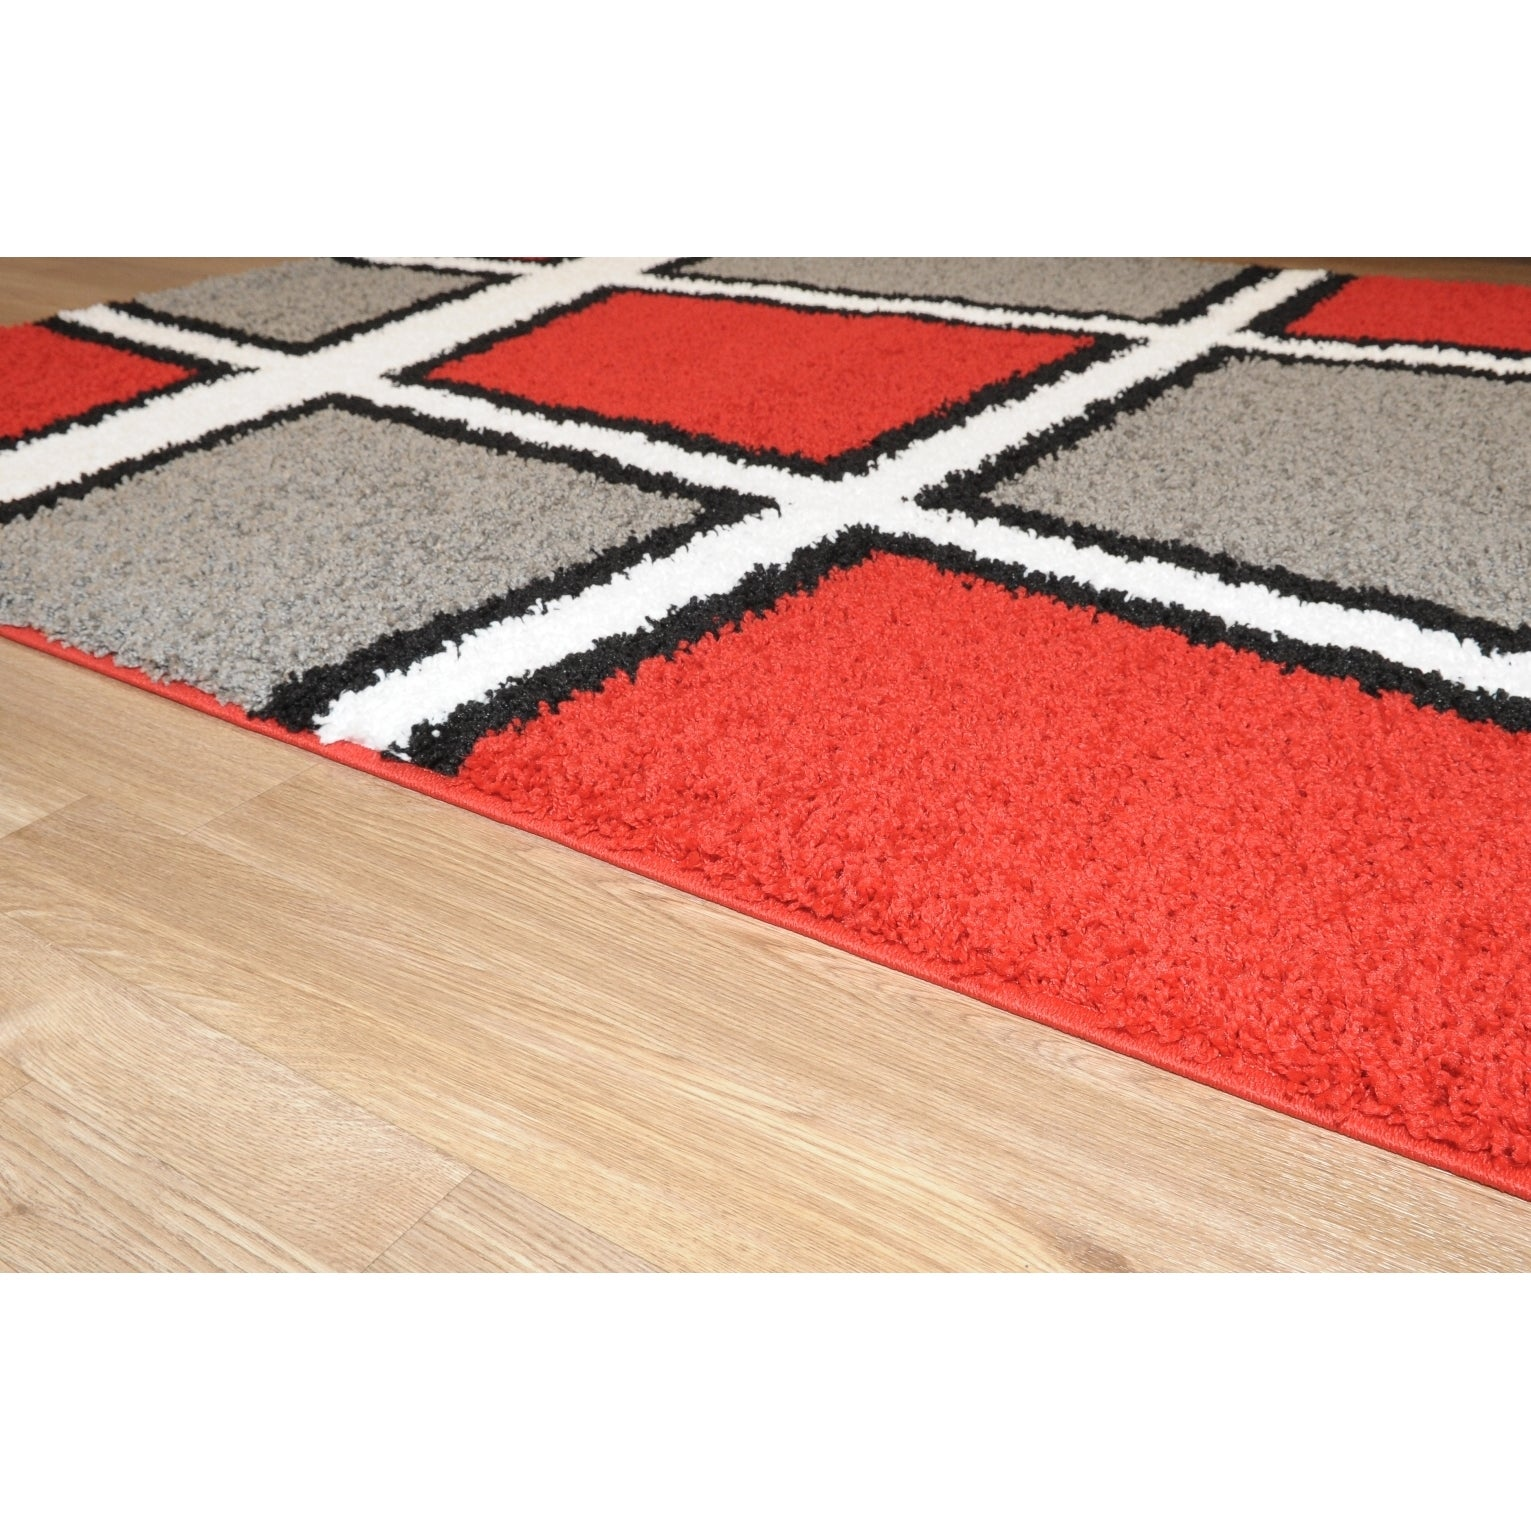 Maxy Home Geometric Tile Design Red Black White Grey Area Rug 5 X 7 Free Shipping Today 16476539